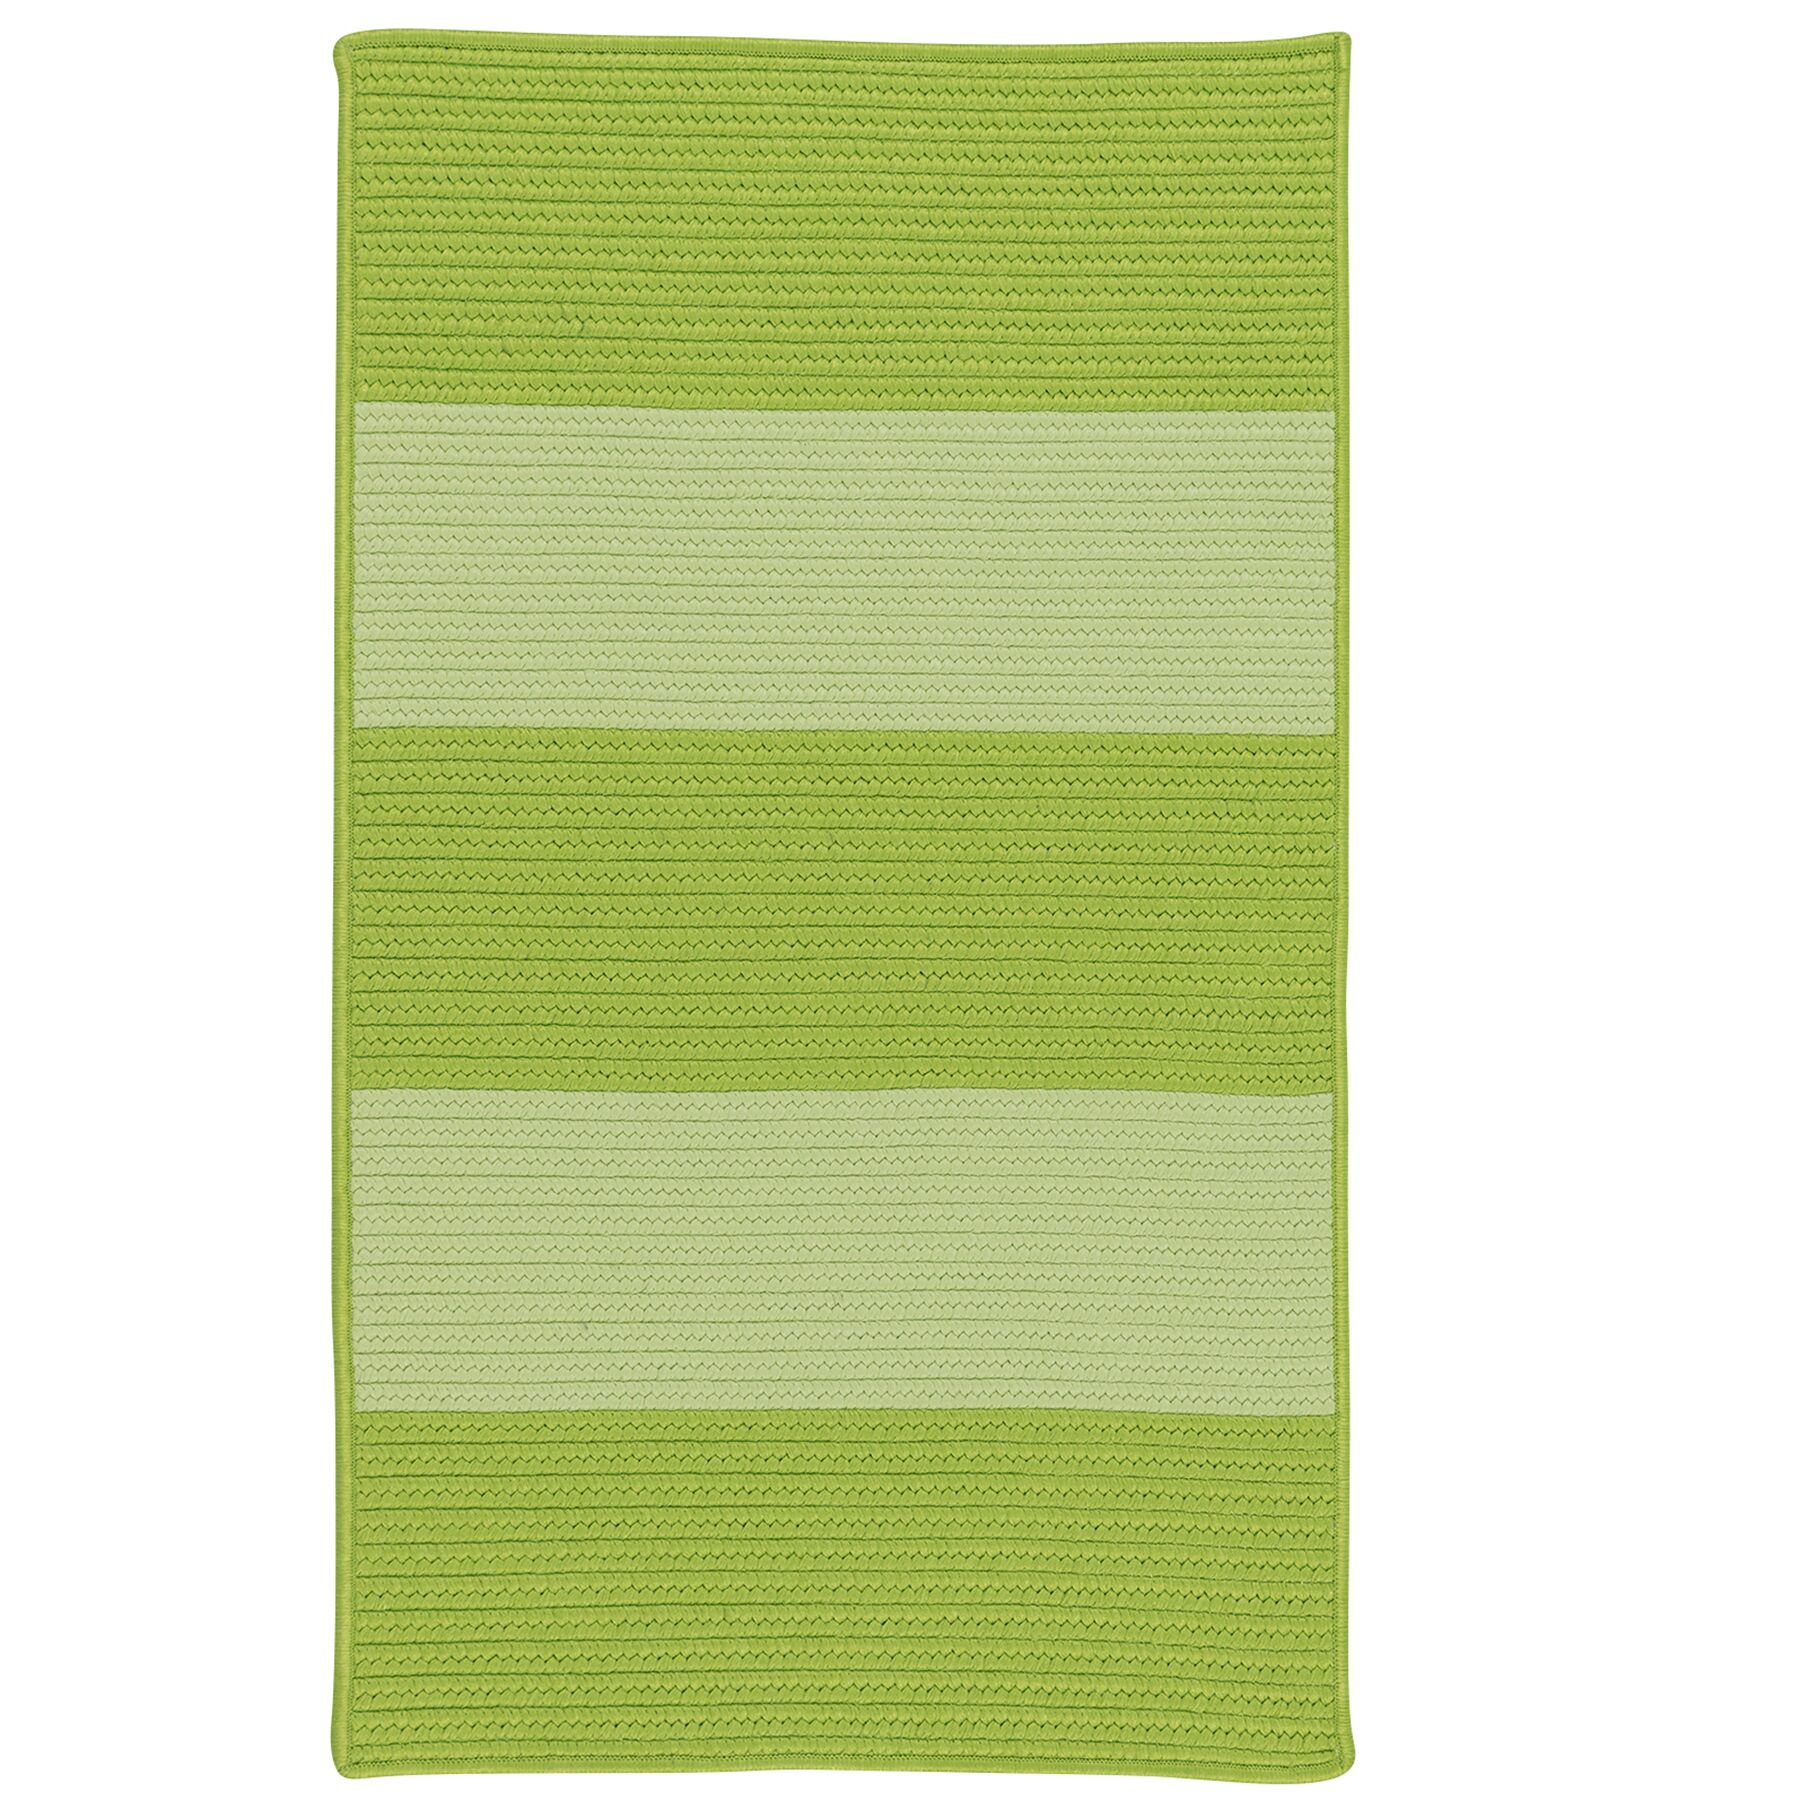 Javen Hand-Braided Green Indoor/Outdoor Area Rug Rug Size: Rectangle 9' x 12'